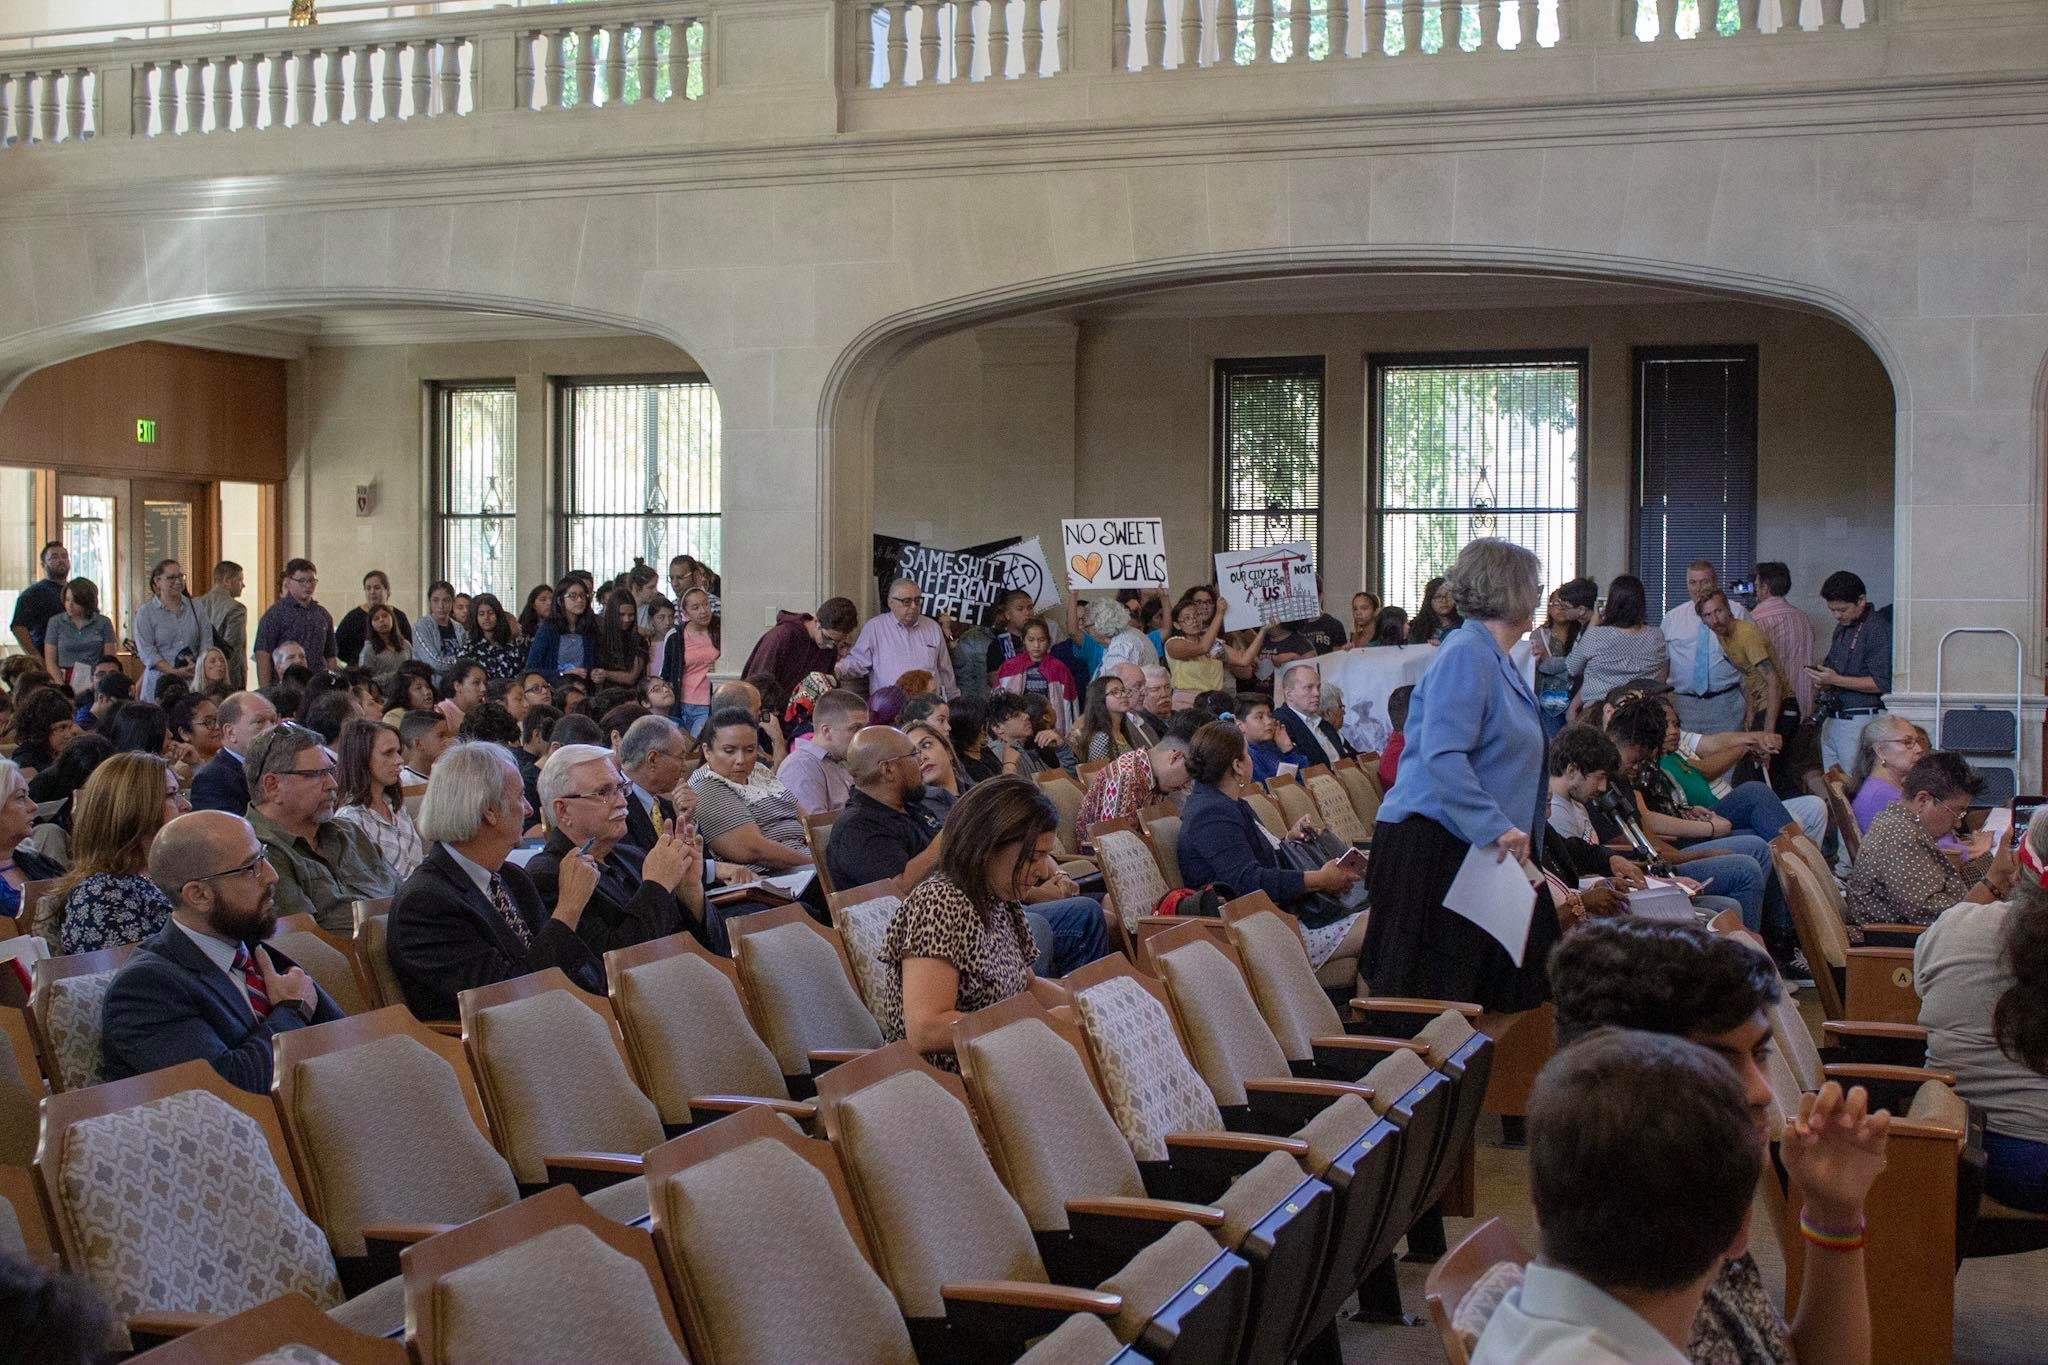 The council chambers were packed with protesters Thursday morning. (Photo by  William Timmerman )